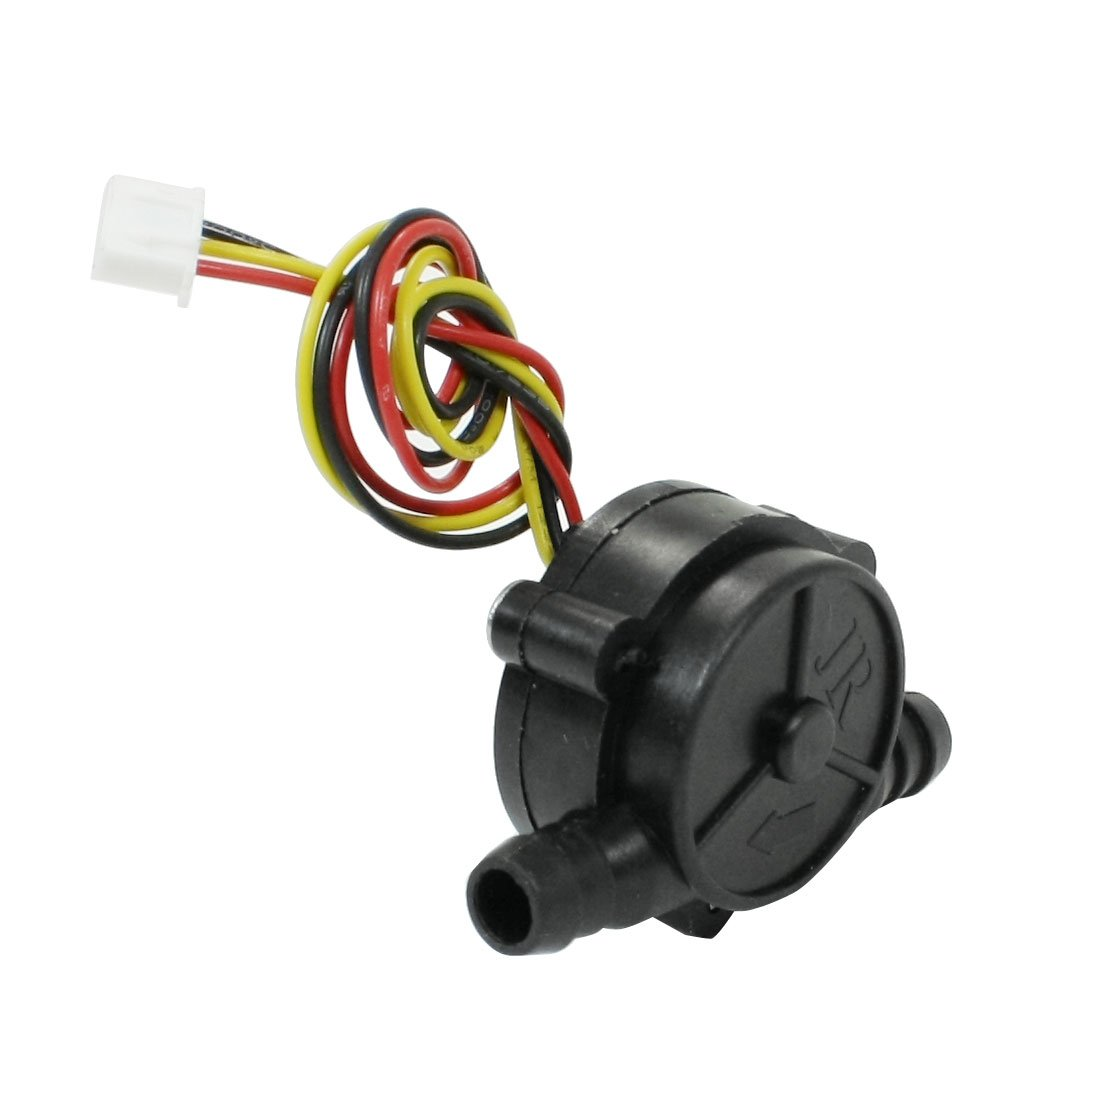 Uxcell HQ-A68-1 1-30L/minute G3/8'' Hall Effect Flow Sensor Counter for Water Heater